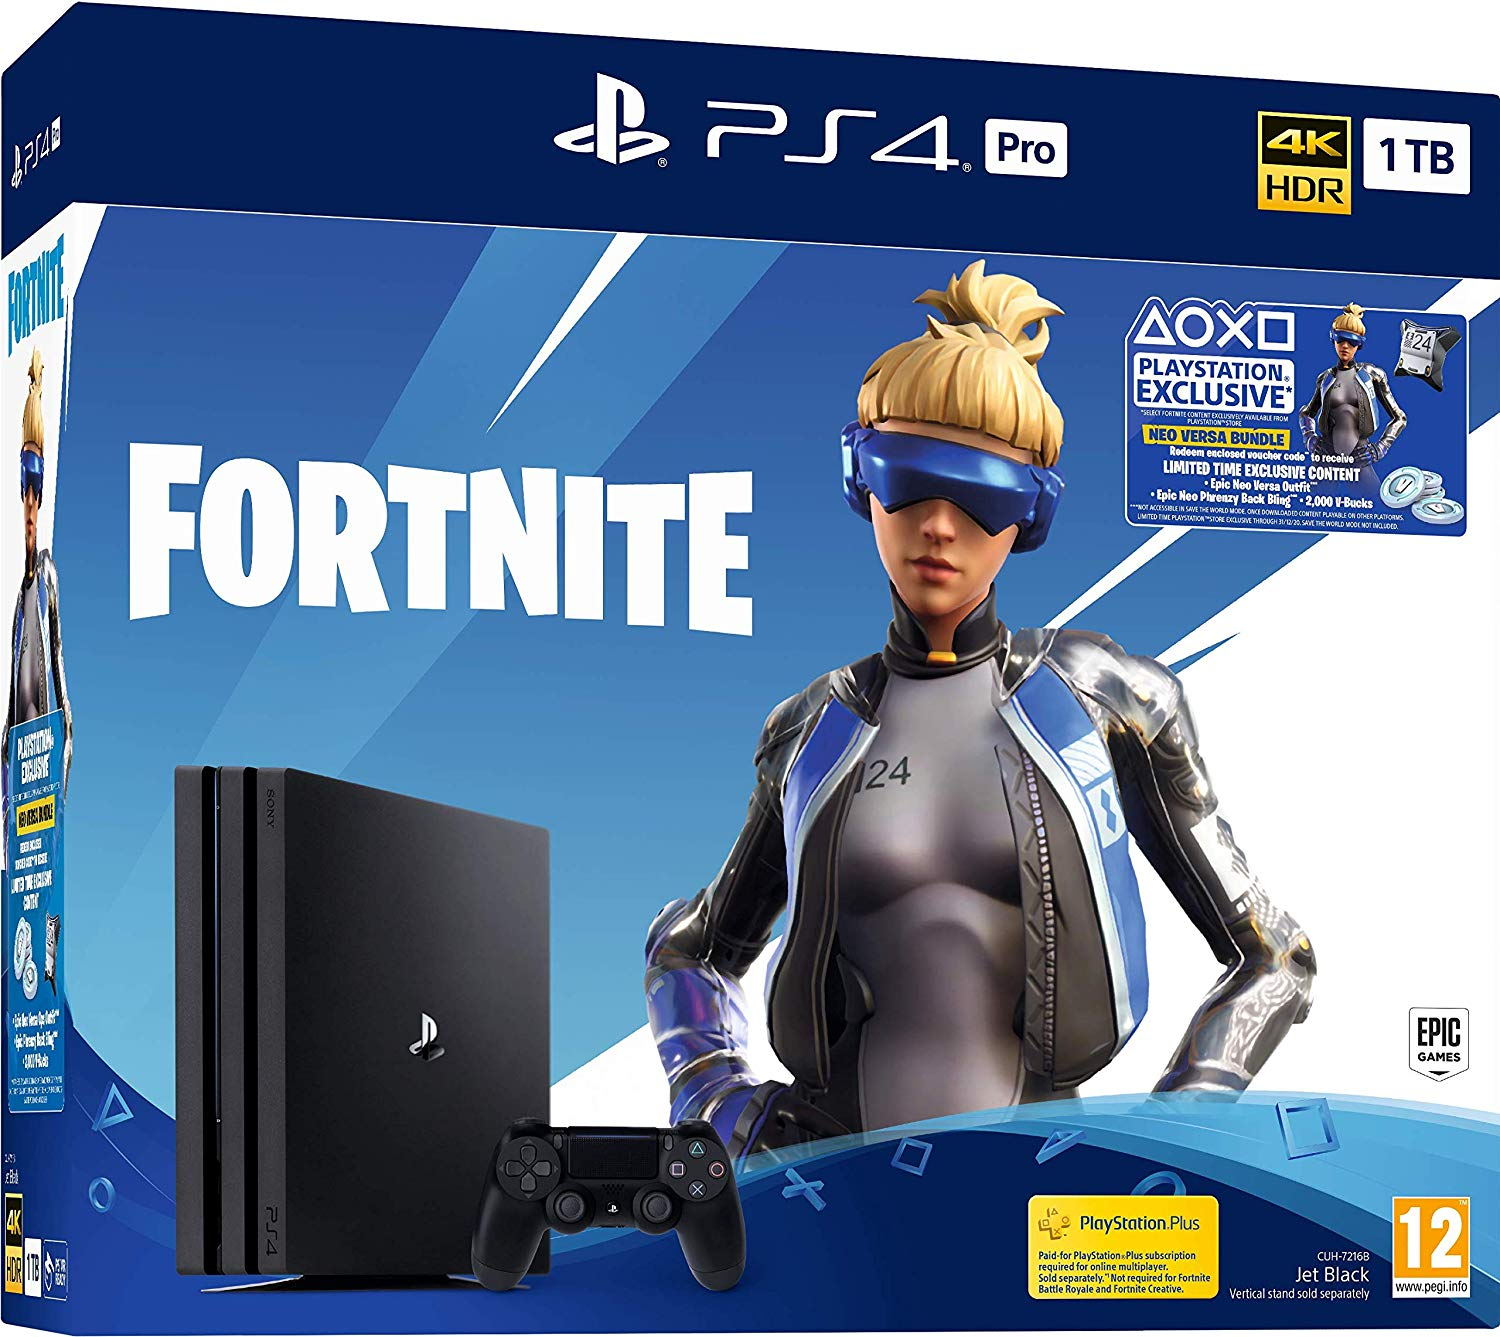 Sony Playstation 4 Pro 1TB Fortnite Neo Versa bundle